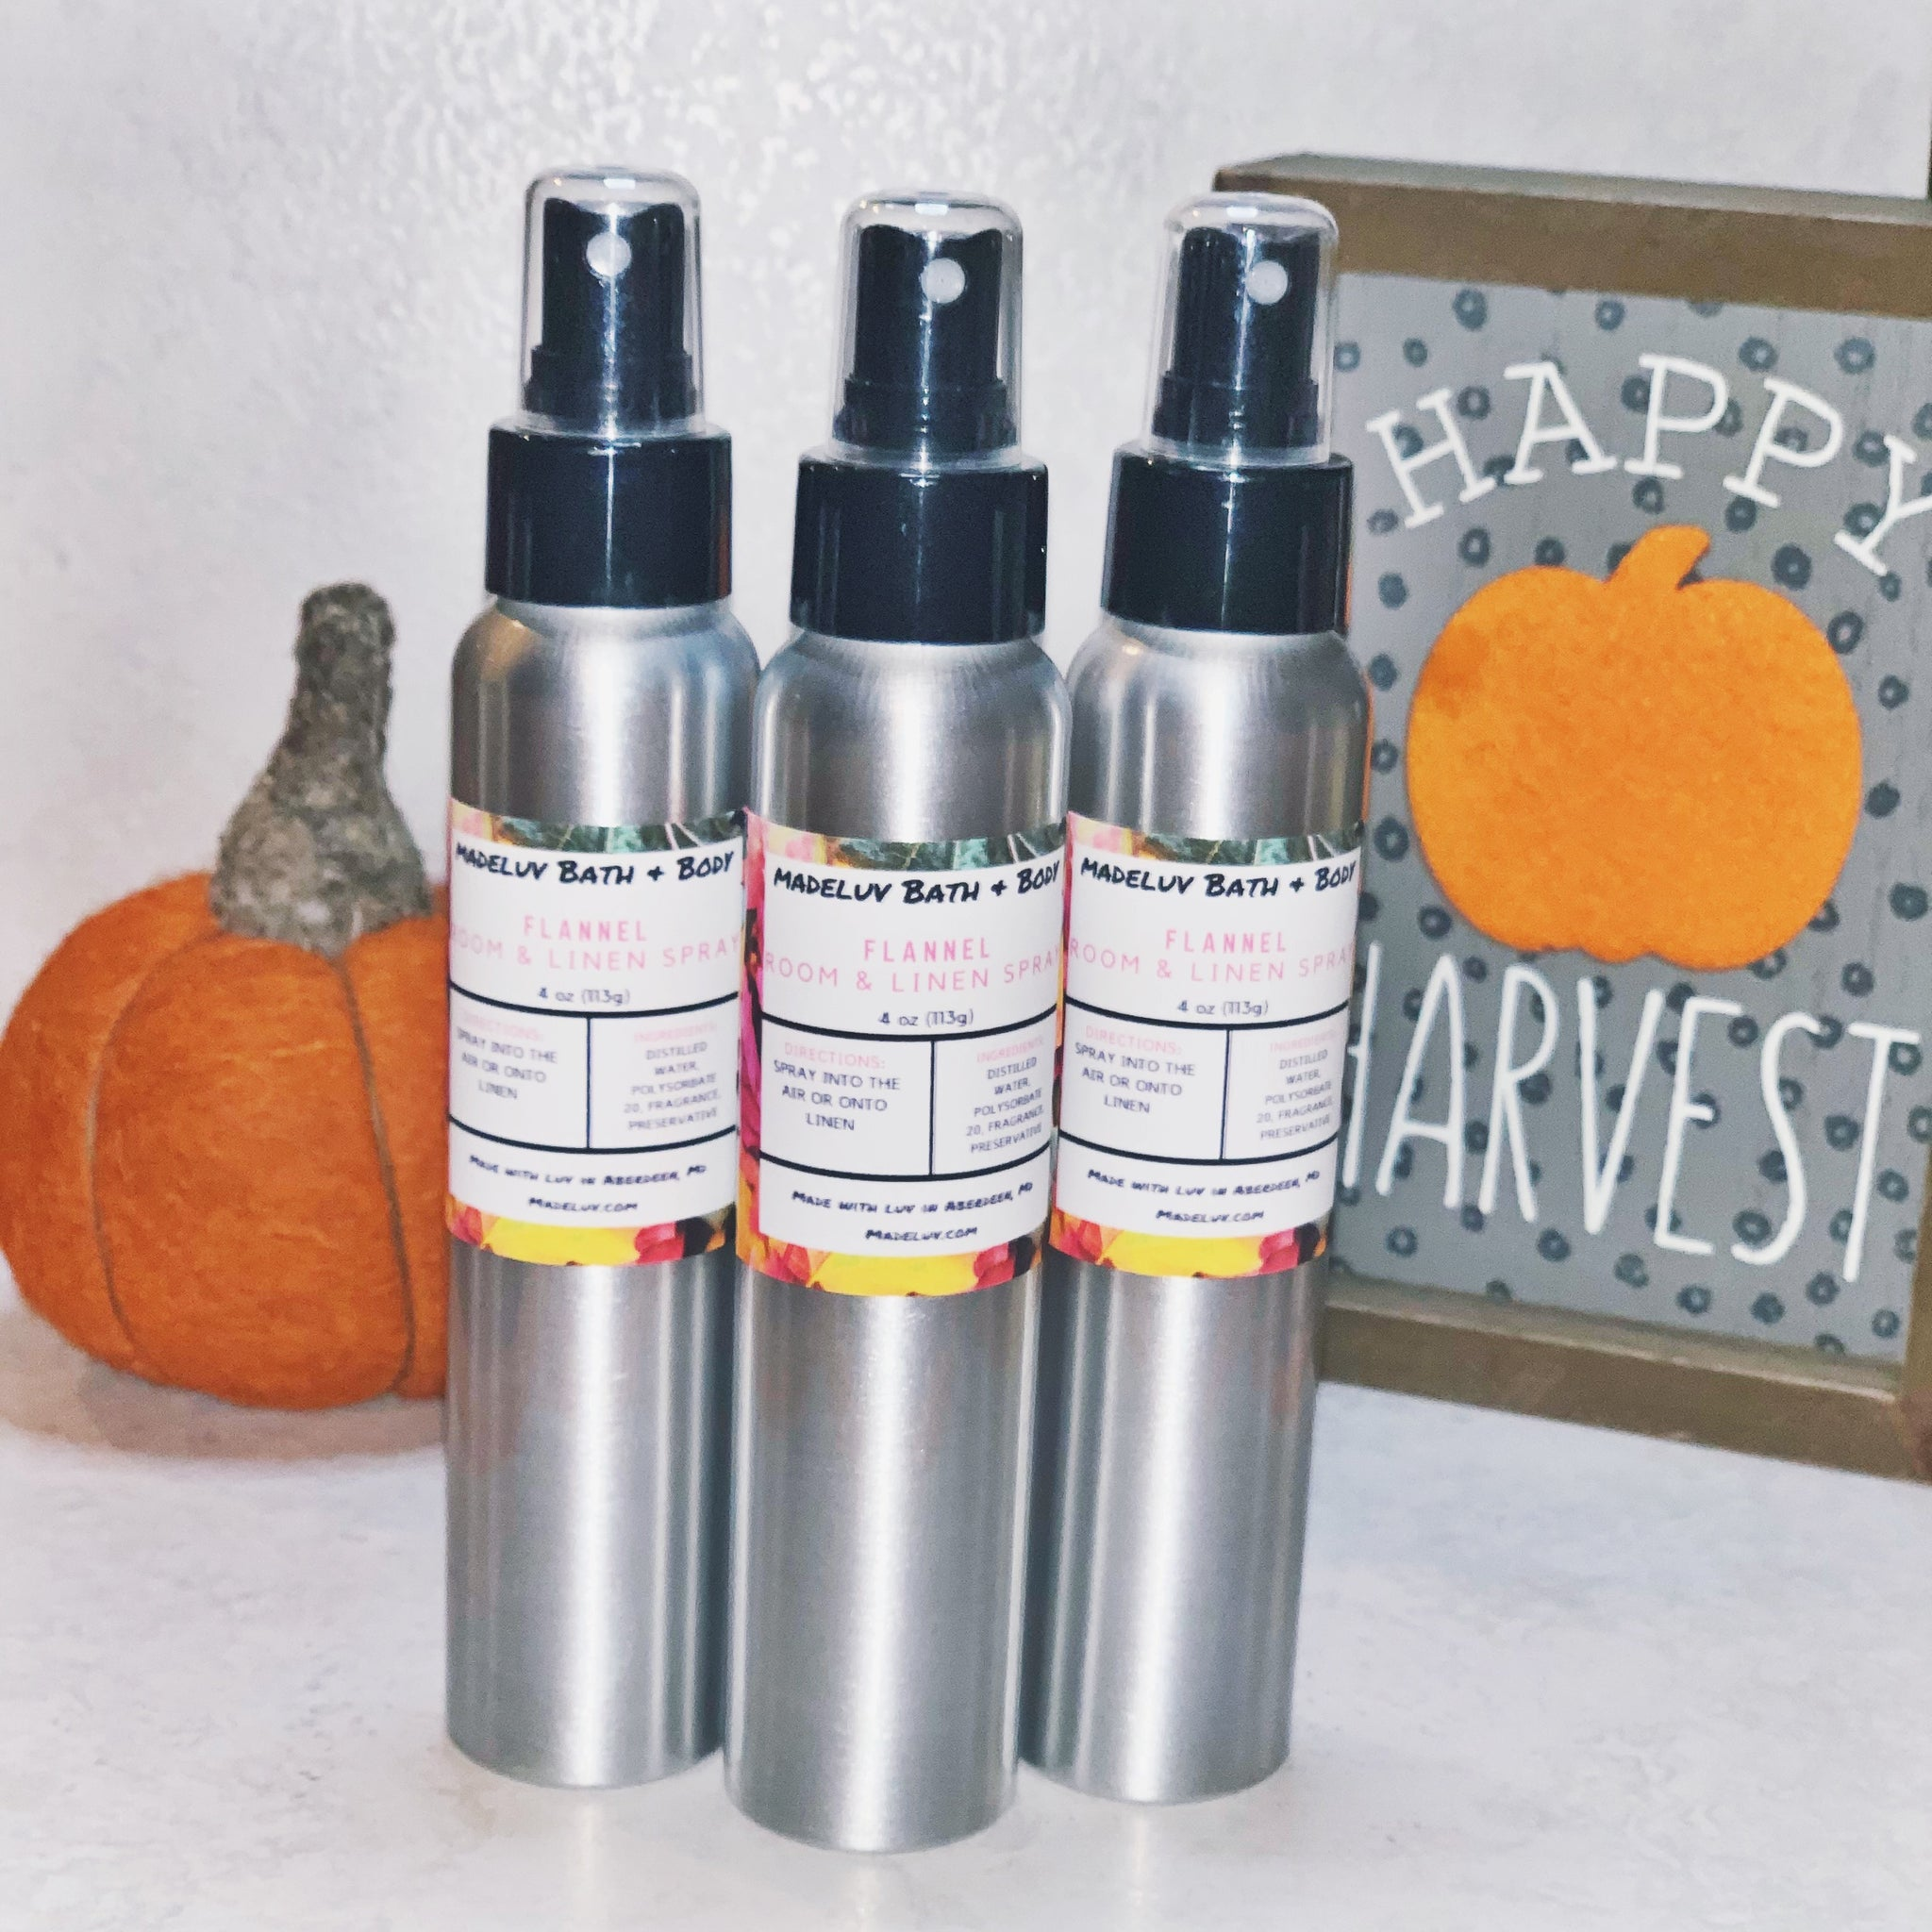 Flannel Room & Linen Spray ***Limited Edition***